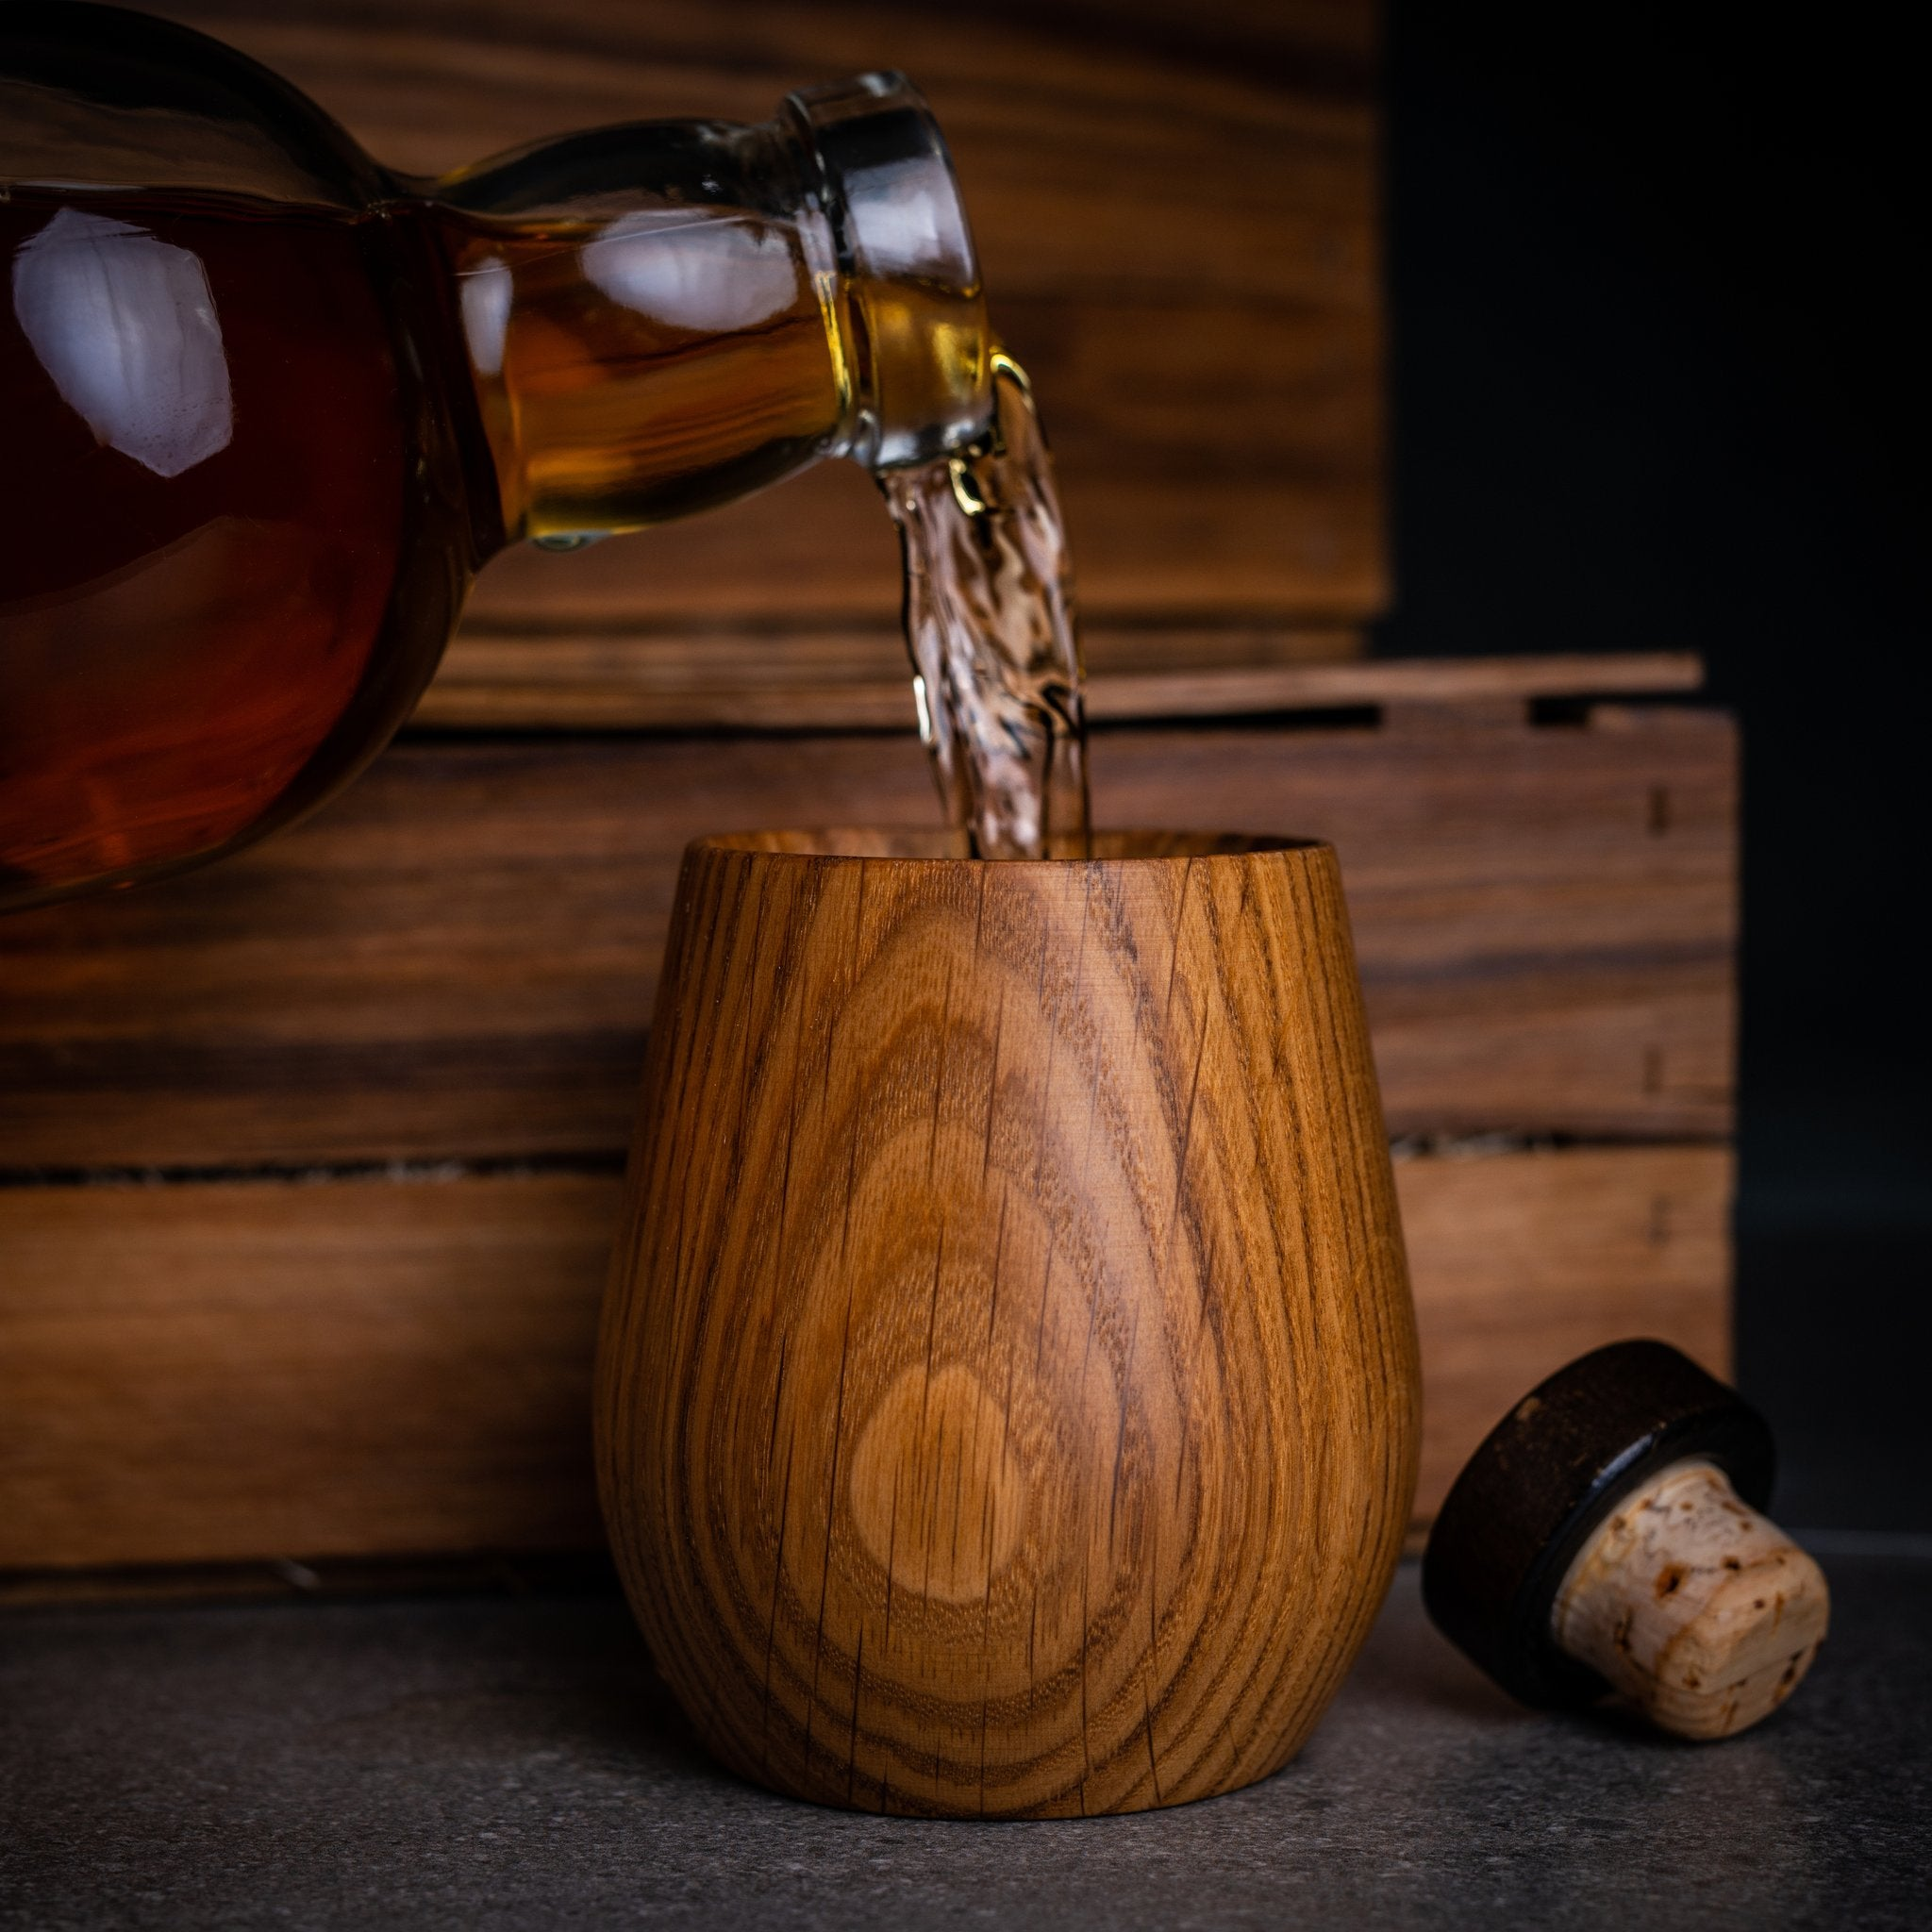 Whisky being poured into a Canadian made oak whiskey tumbler by Stinson Studios.